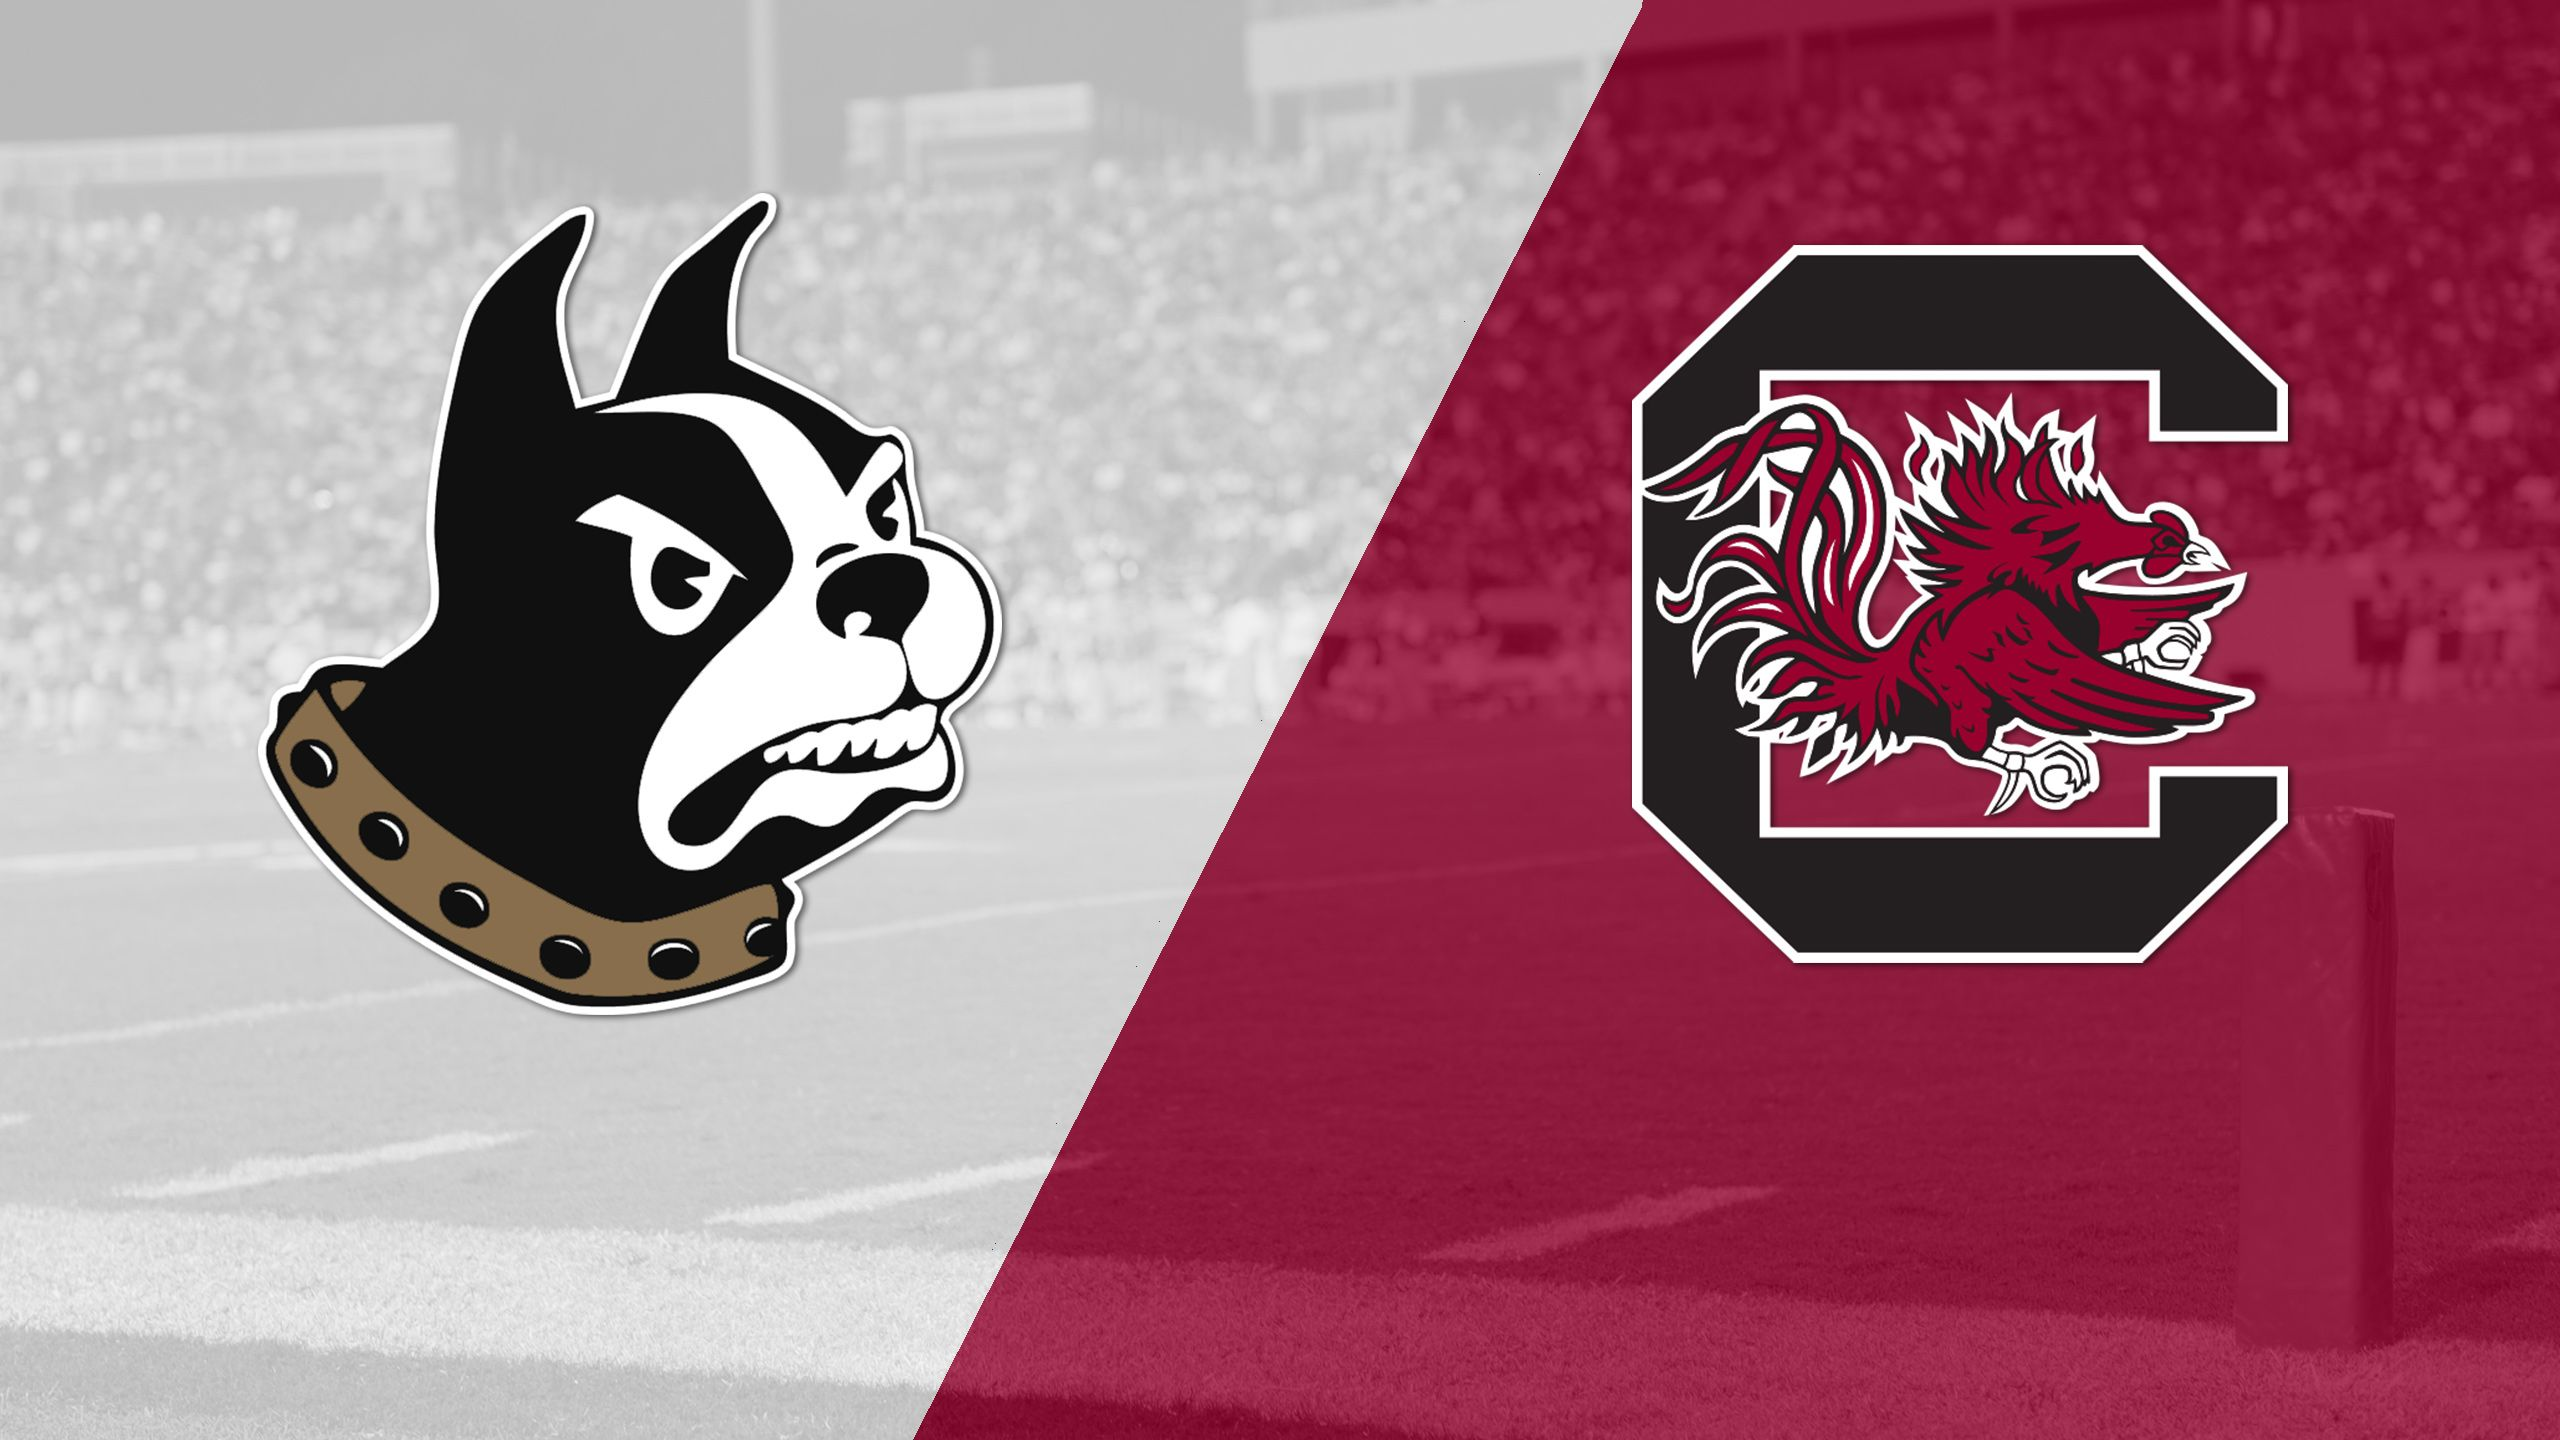 Wofford vs. South Carolina (Football) (re-air)